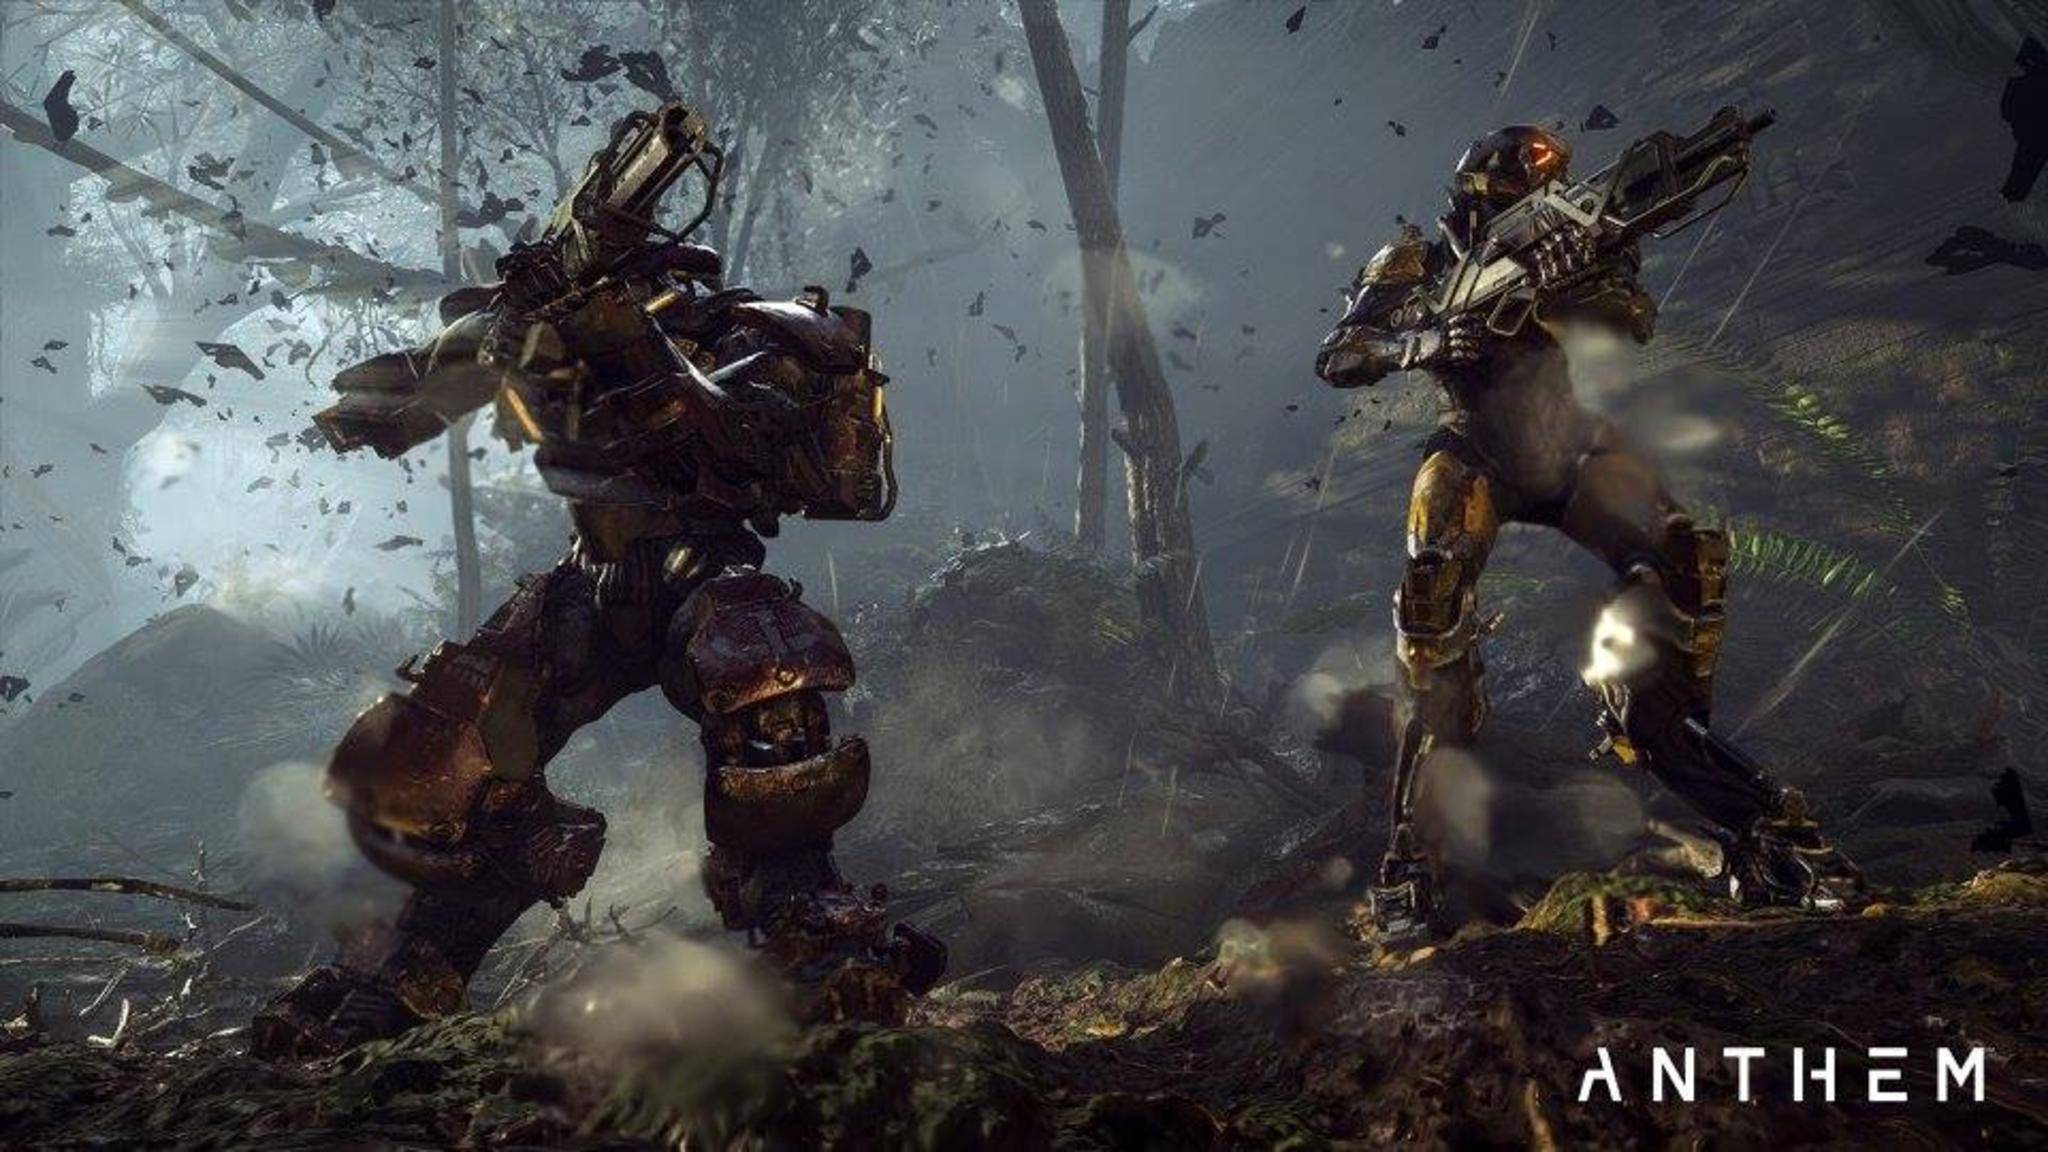 """Strong alone, stronger together"": Das Motto der Freelancerin ""Anthem"" hat auch Einfluss aufs Gameplay."